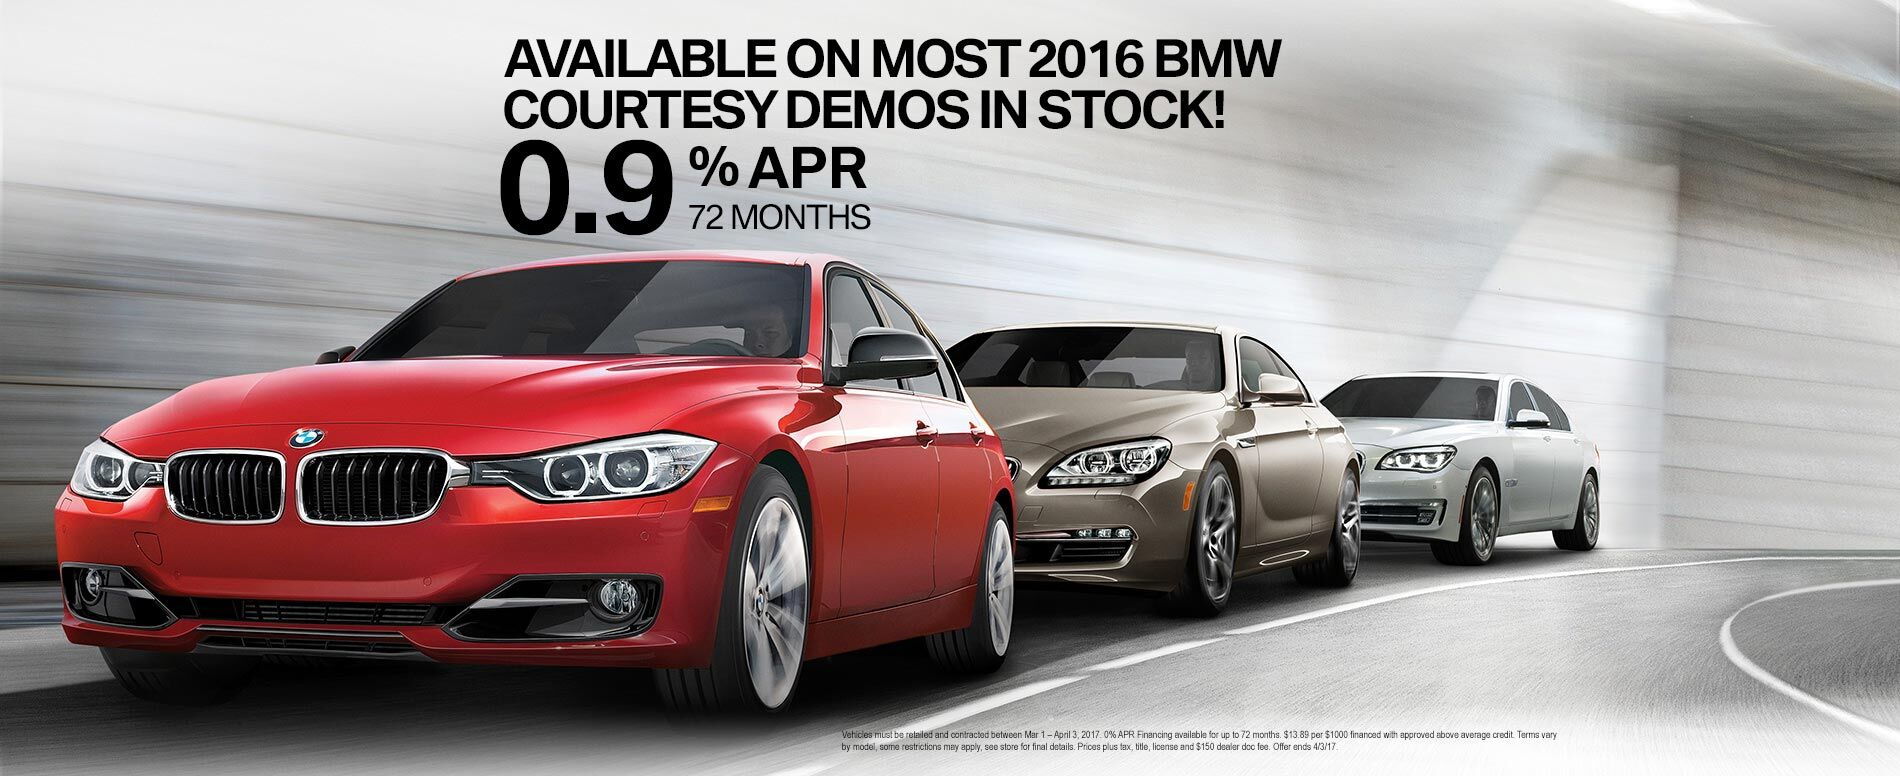 Available_on_most_2016_BMW_Courtesy_Demos_in_Stock!